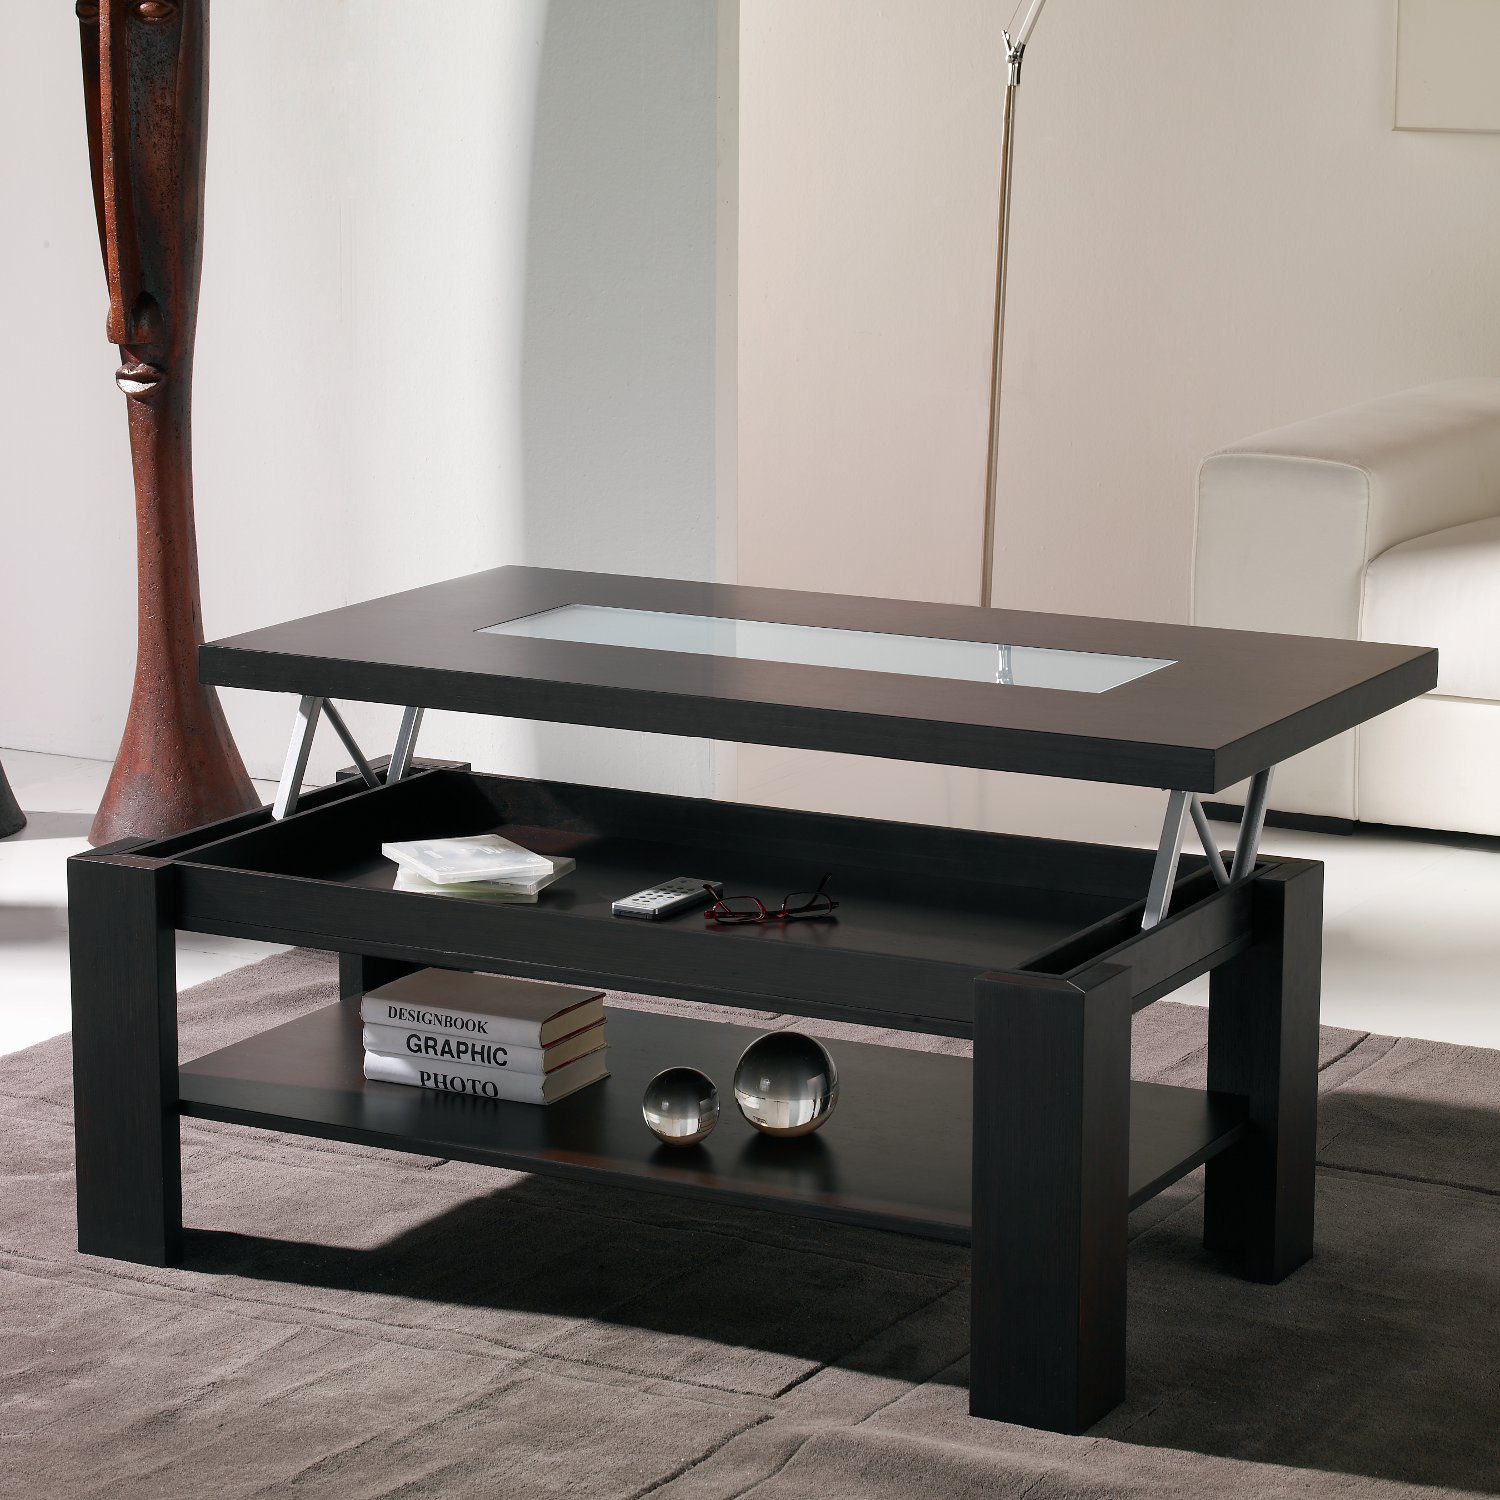 Table basse relevable de salon - Table basse de salon ...